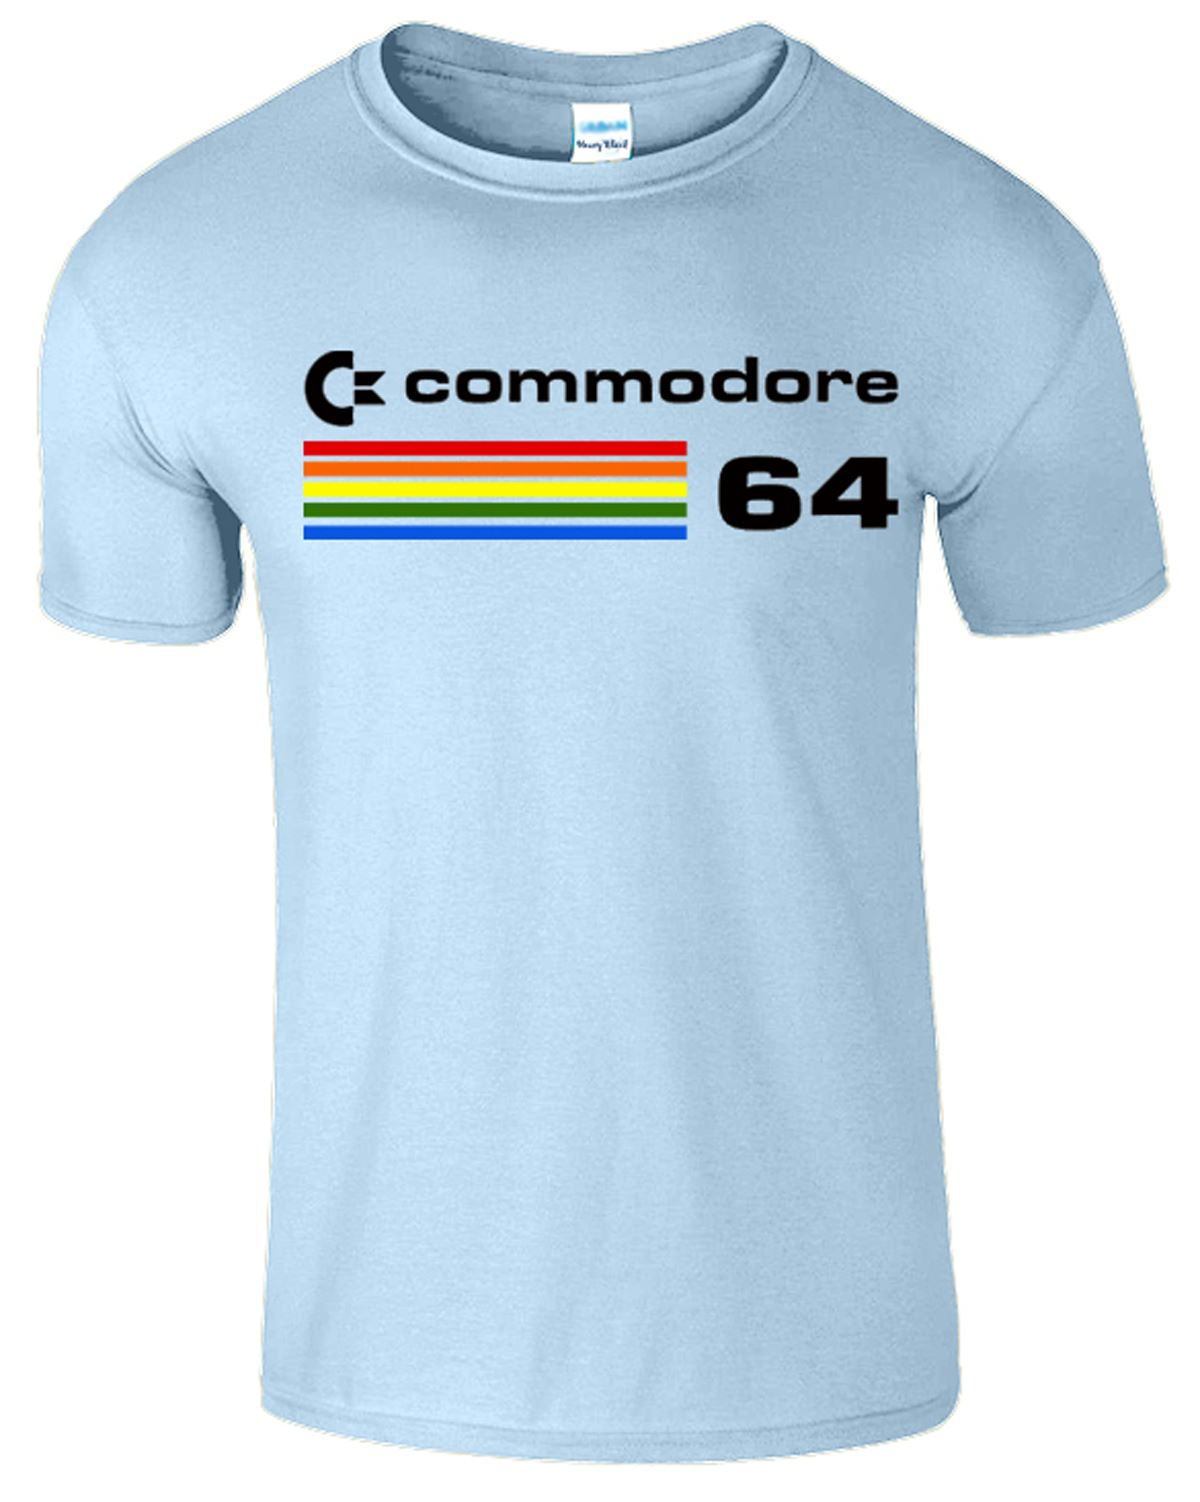 Commodore 64 mens computer t shirt retro 80s video game t for Game t shirts uk